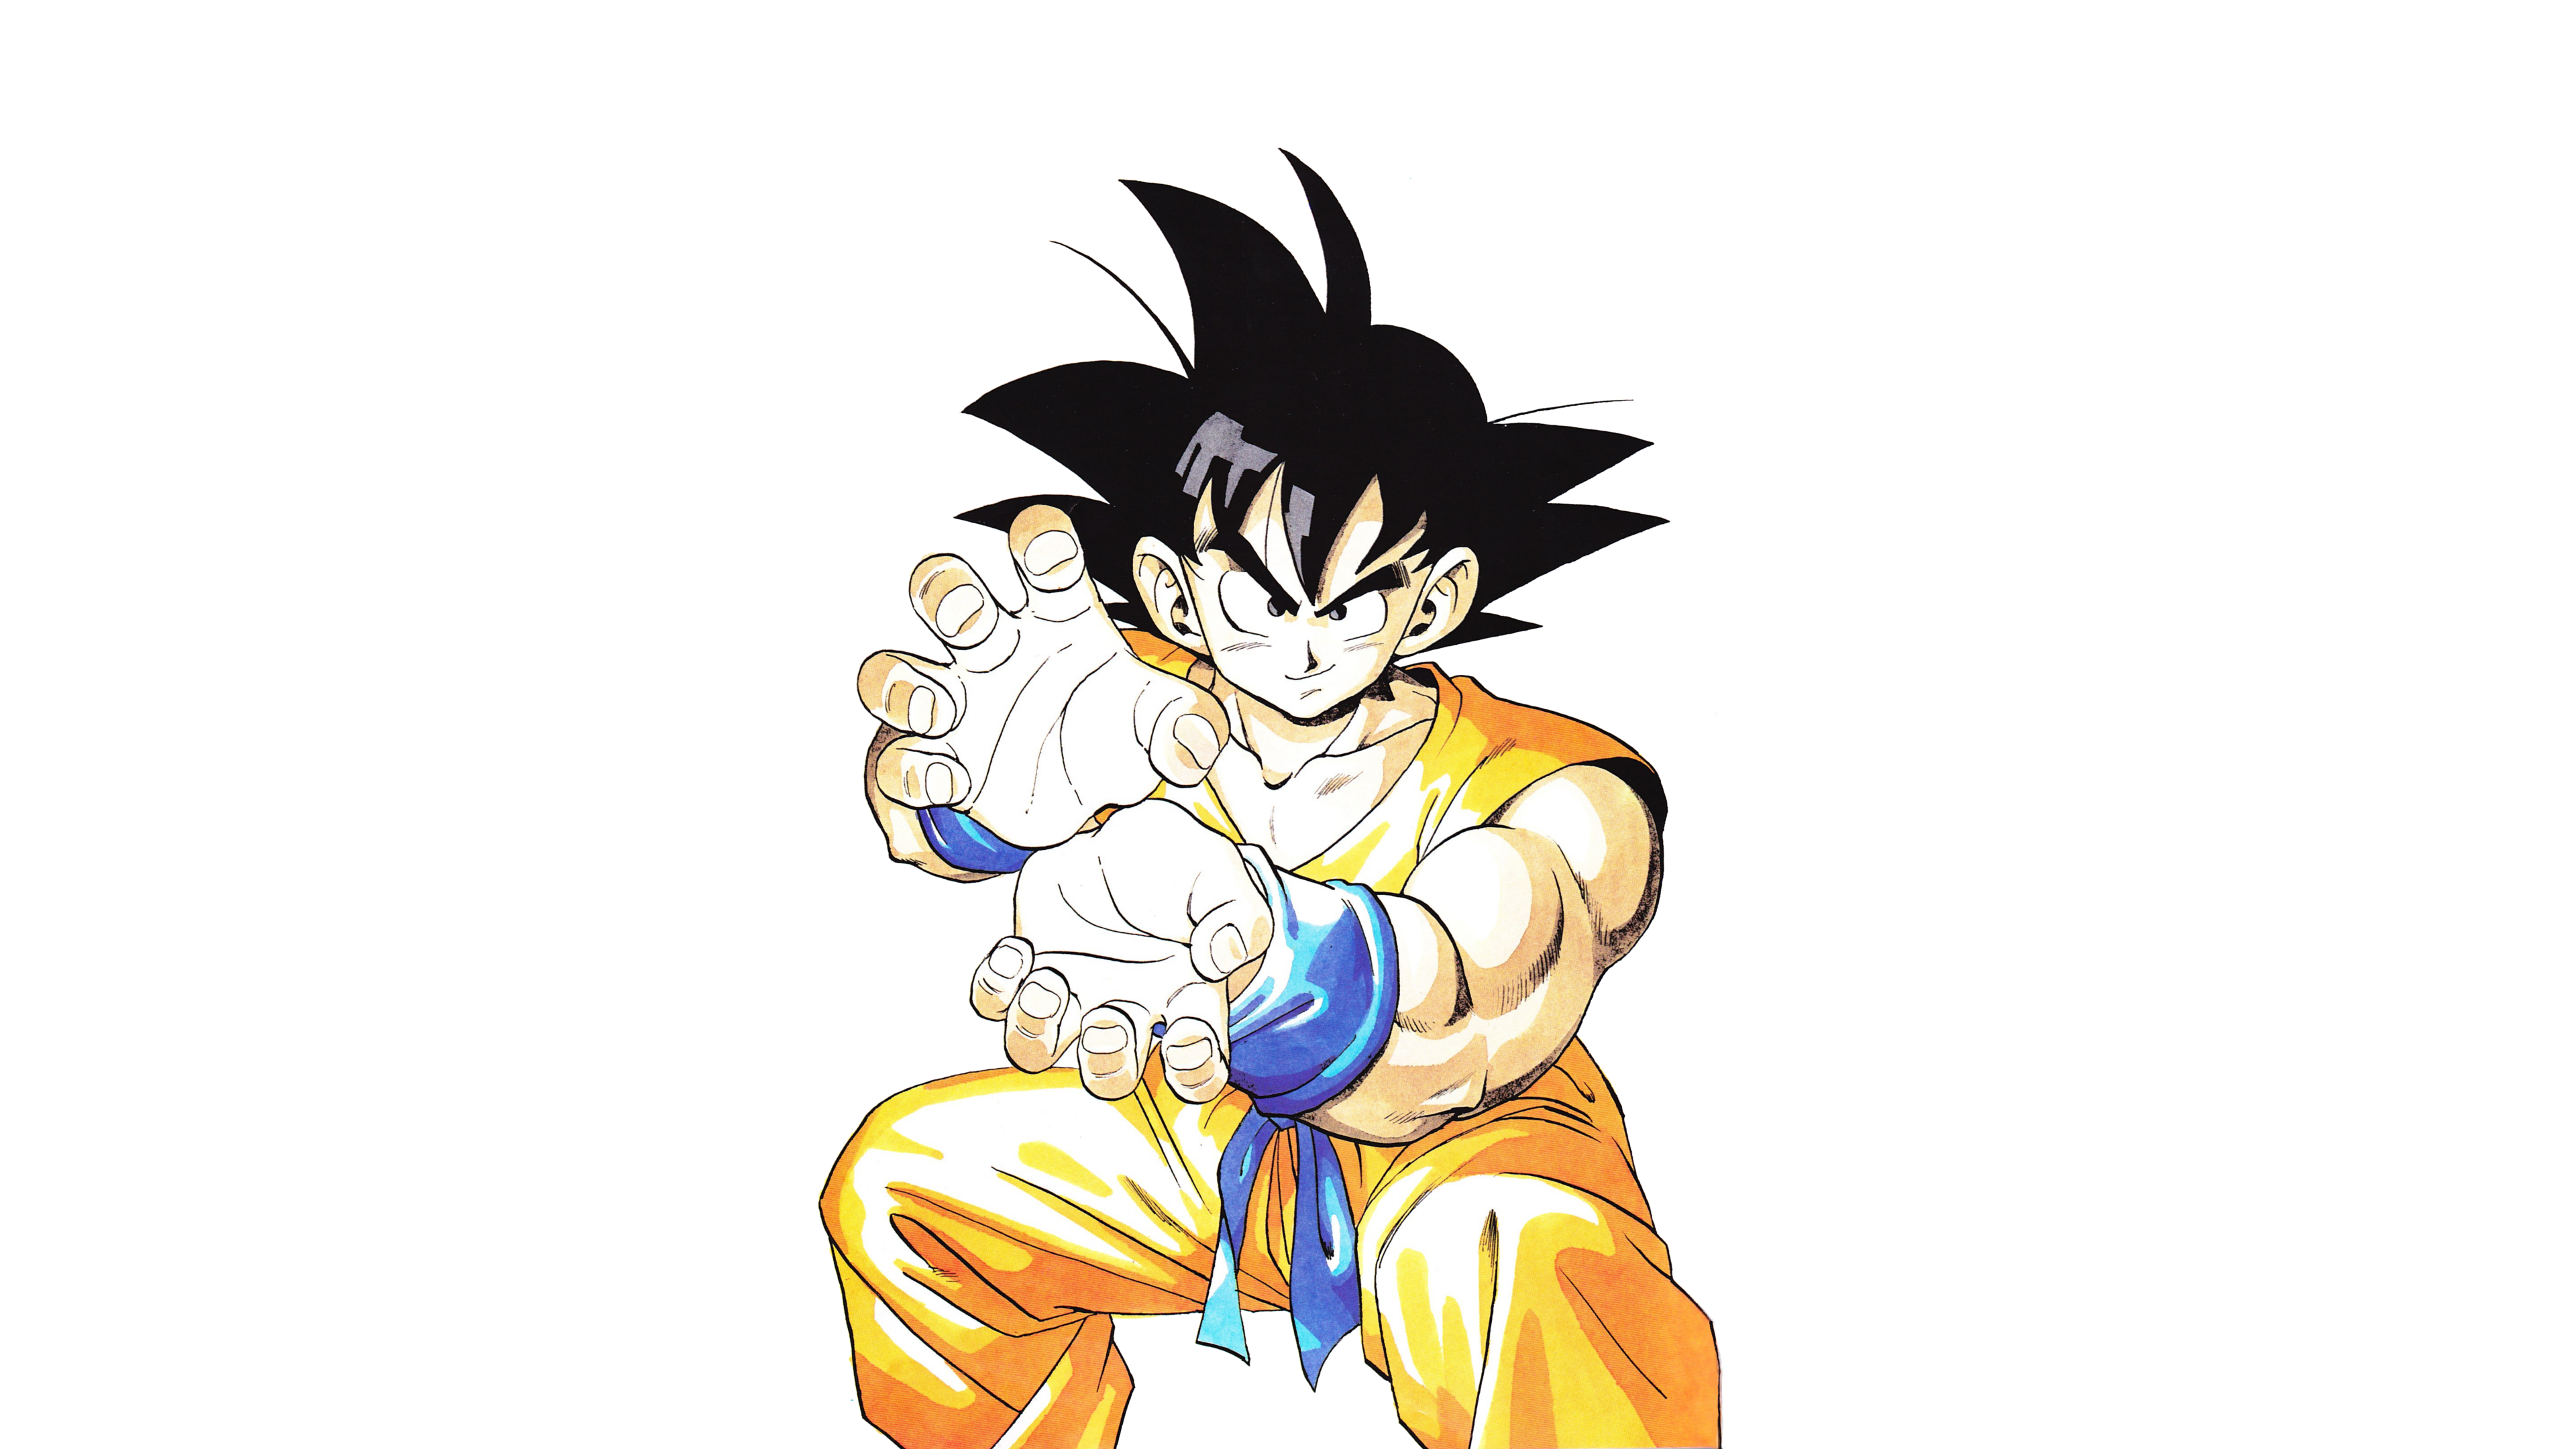 Anime 3840x2160 Dragon Ball Z Son Goku Dragon ball